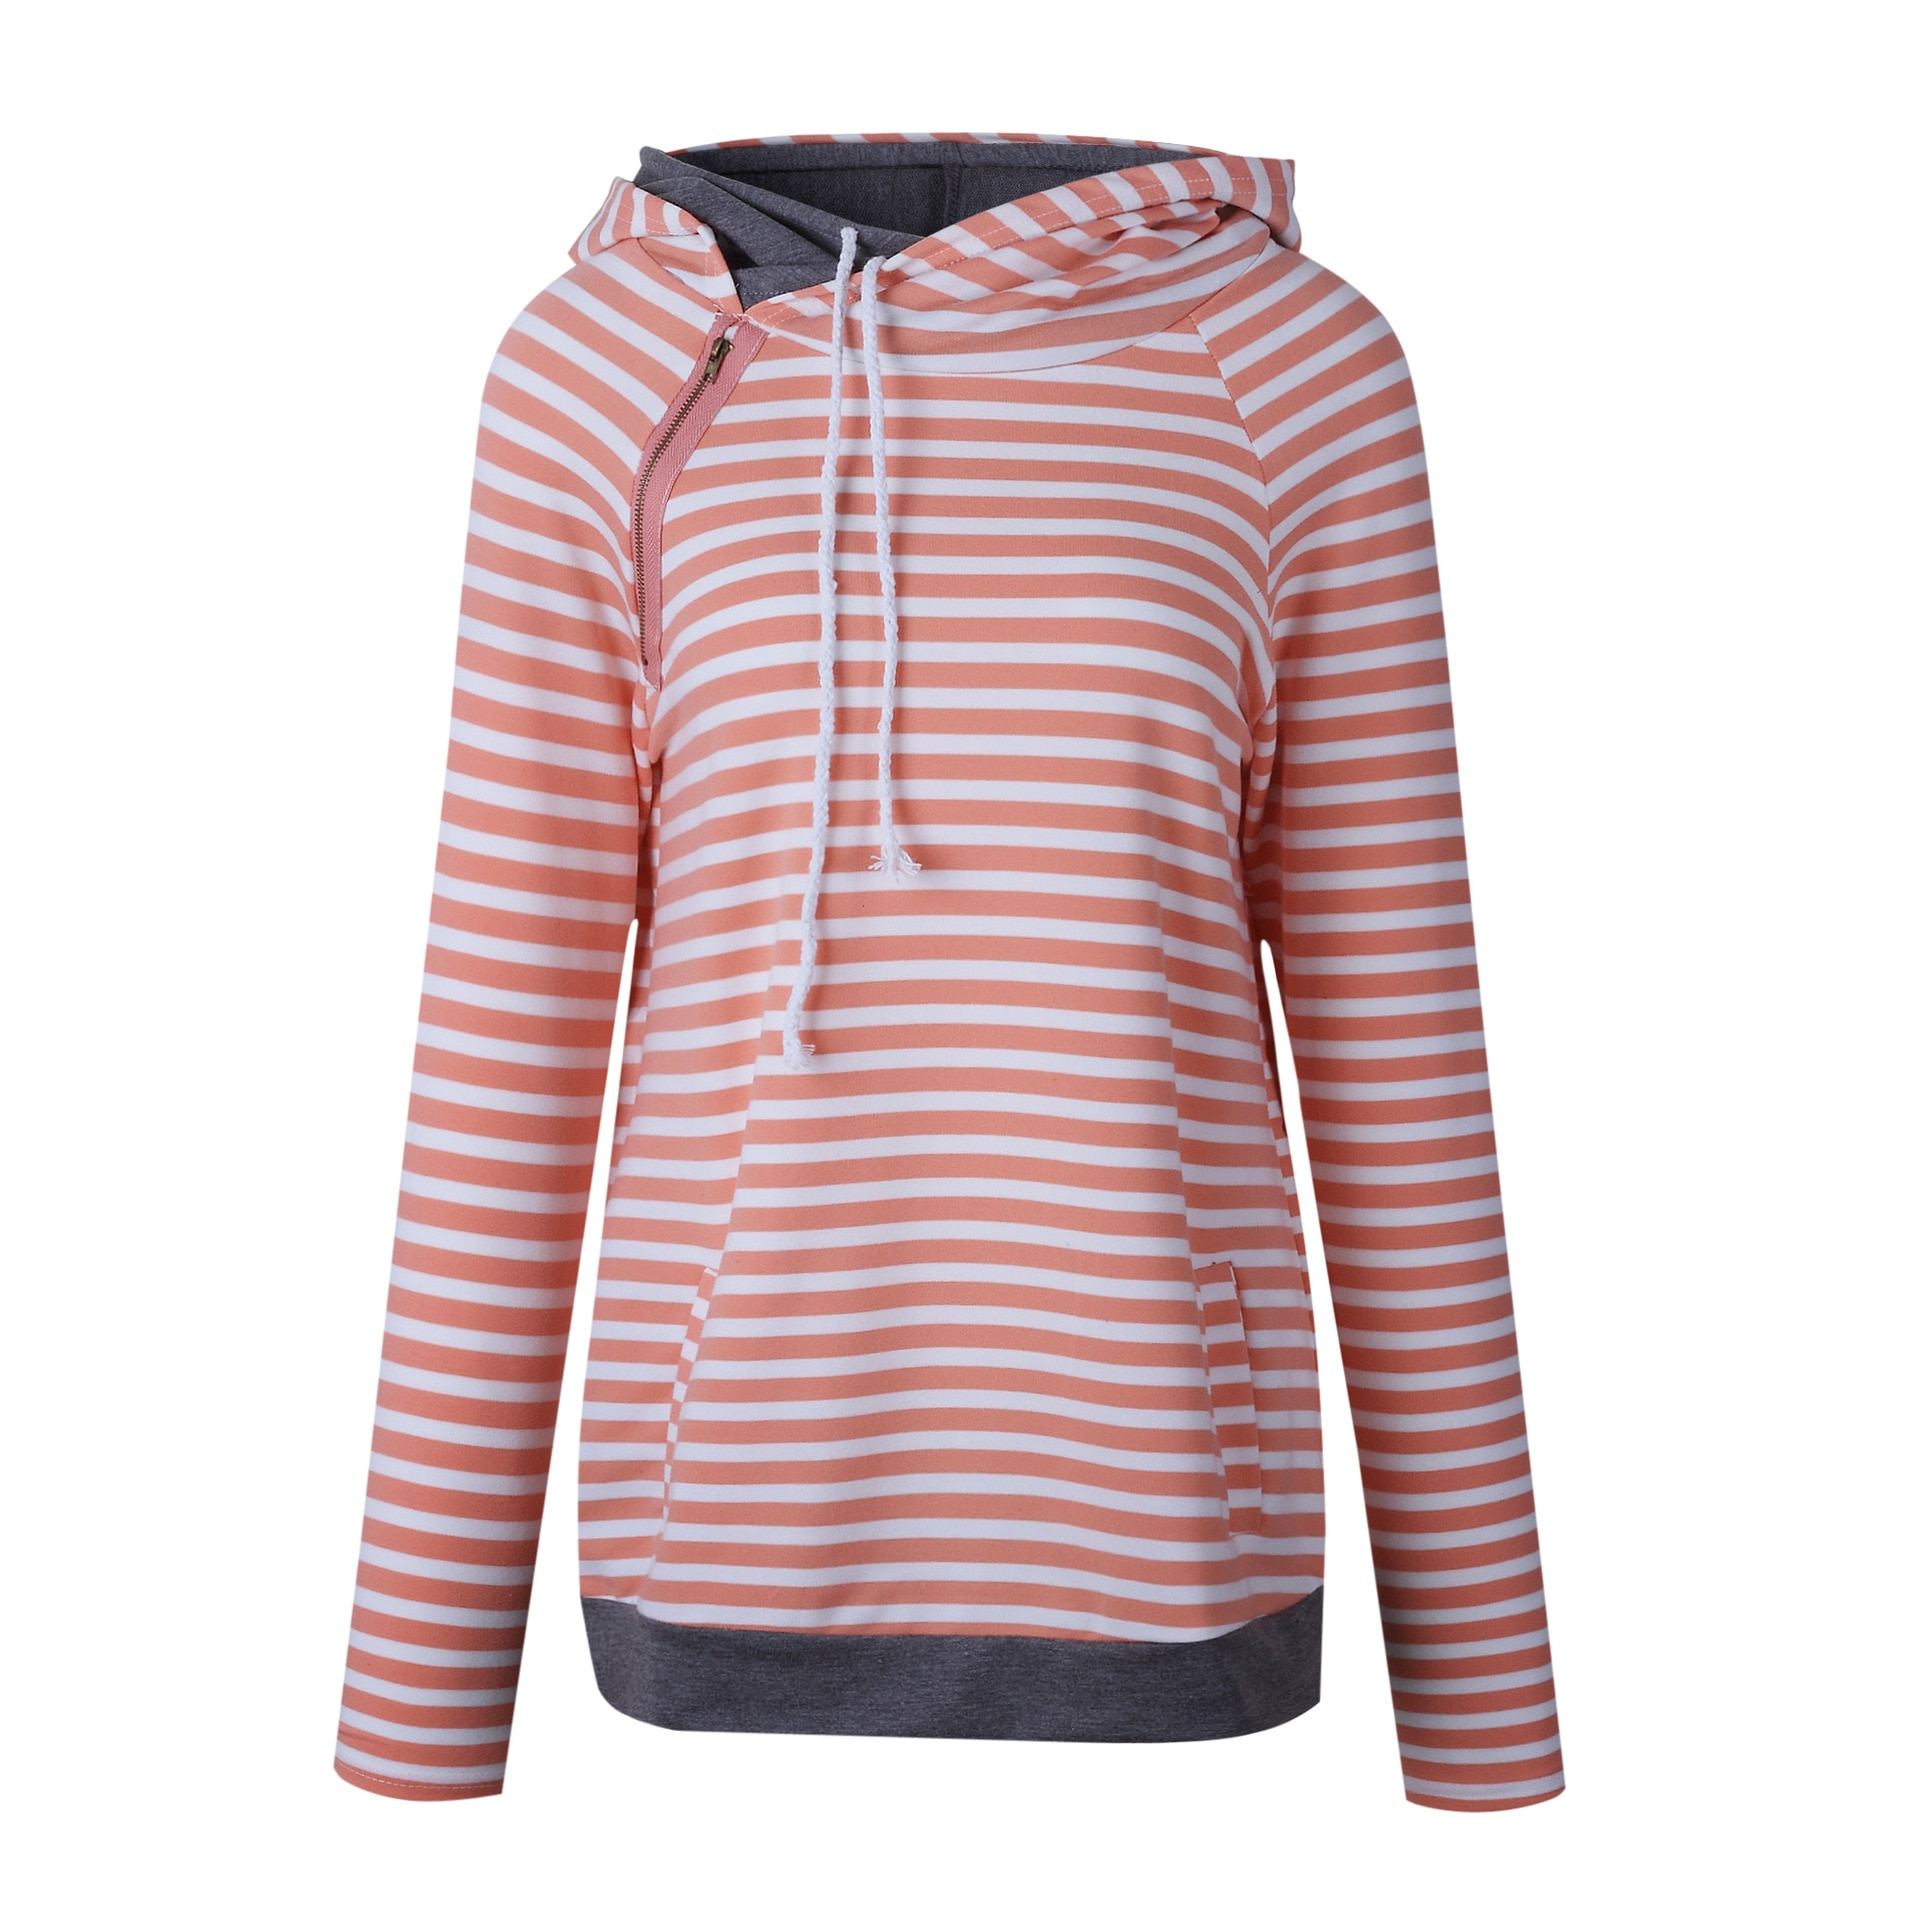 Women's Patchwork Striped Pullover Long Sleeve Hoodie, Tops With Pockets, Hooded Sweatshirt 6